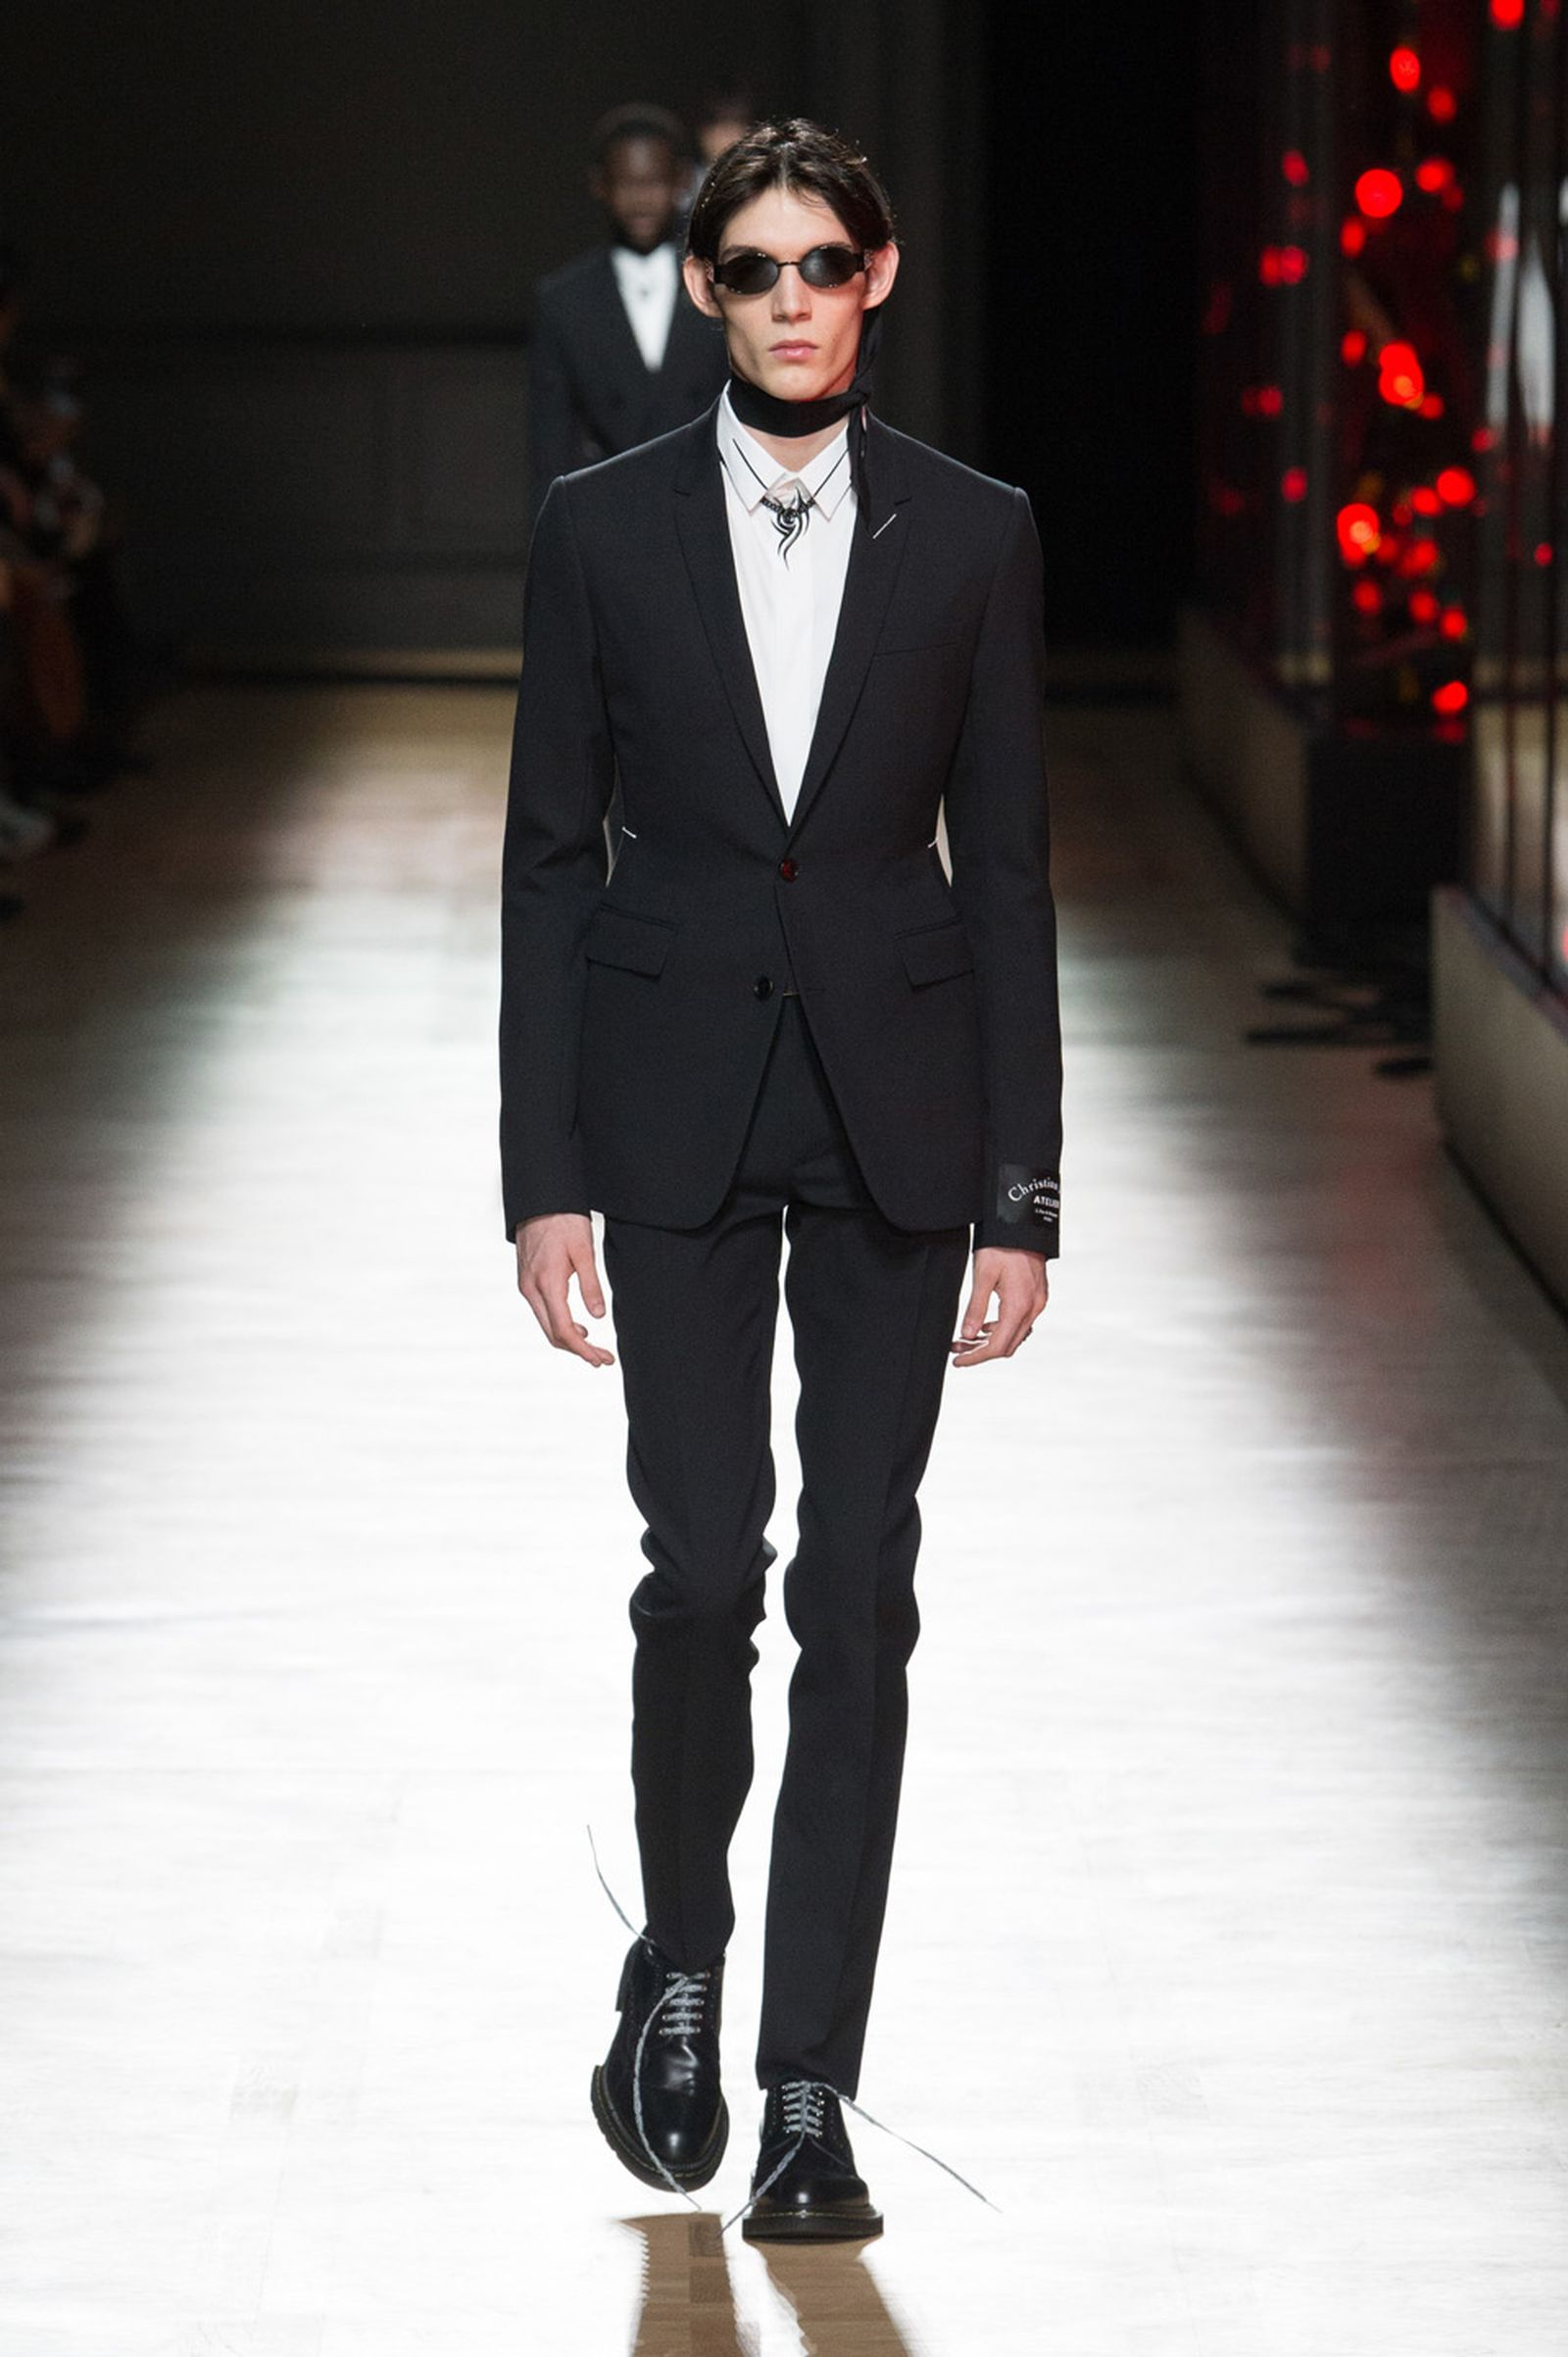 DIOR HOMME WINTER 18 19 BY PATRICE STABLE look05 Fall/WInter 2018 runway